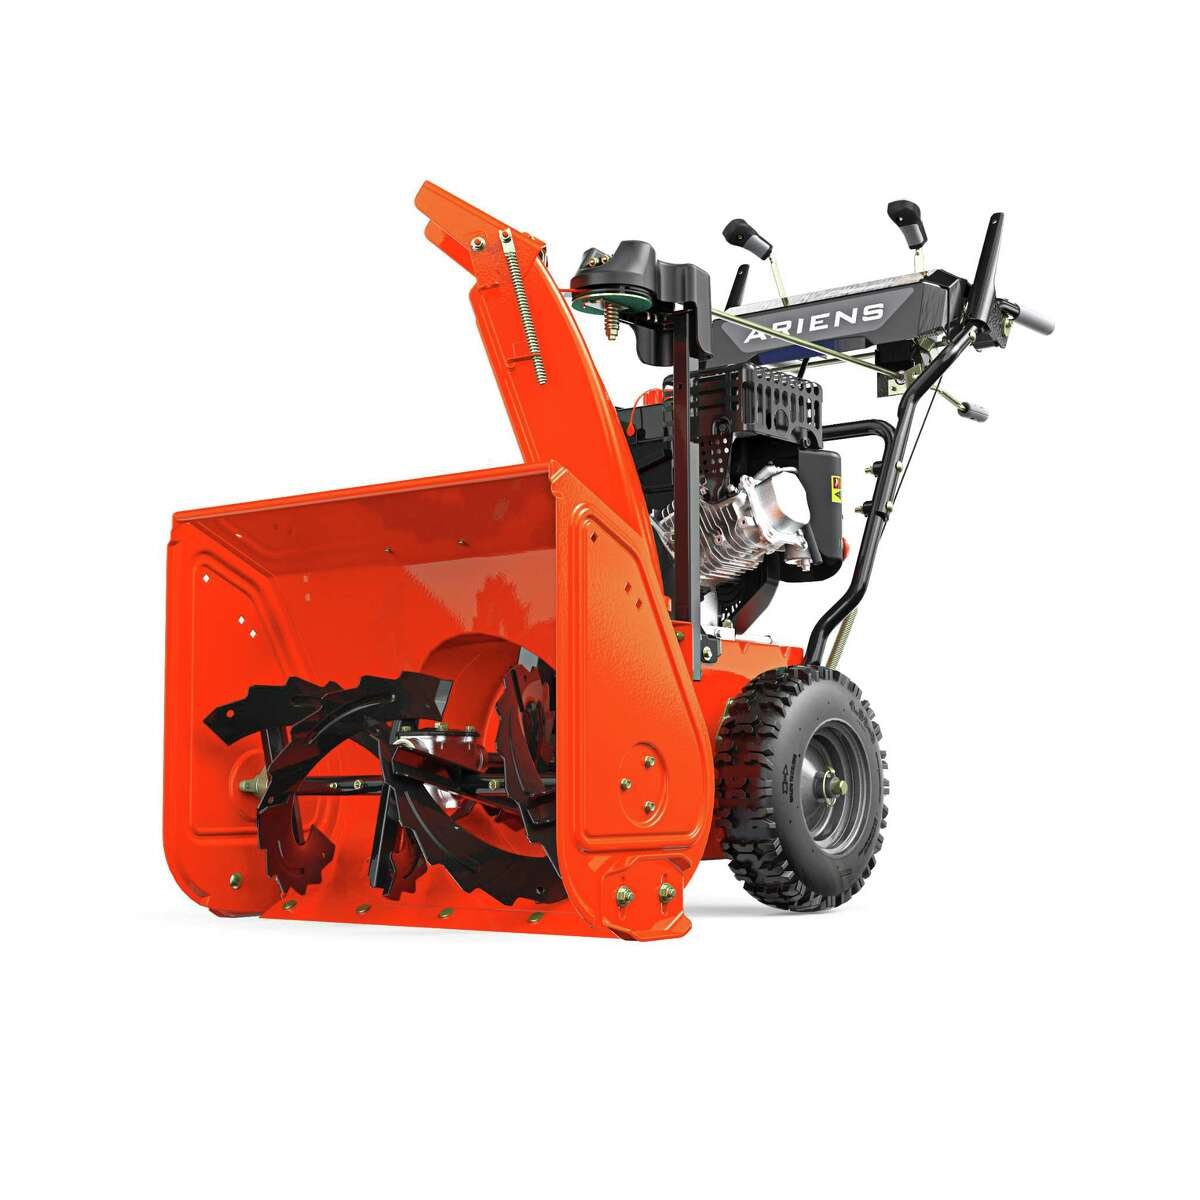 """If you have more than a walkway and a stretch of sidewalk to clear of snow, a snowblower is nice to have. It's an investment, but it beats breaking your back shoveling. Shown here: an Ariens Company """"classic"""" model snowblower. Available at local Home Depot stores ($700) and at Atlantic Irrigation, 74 Swatling Road, Latham."""